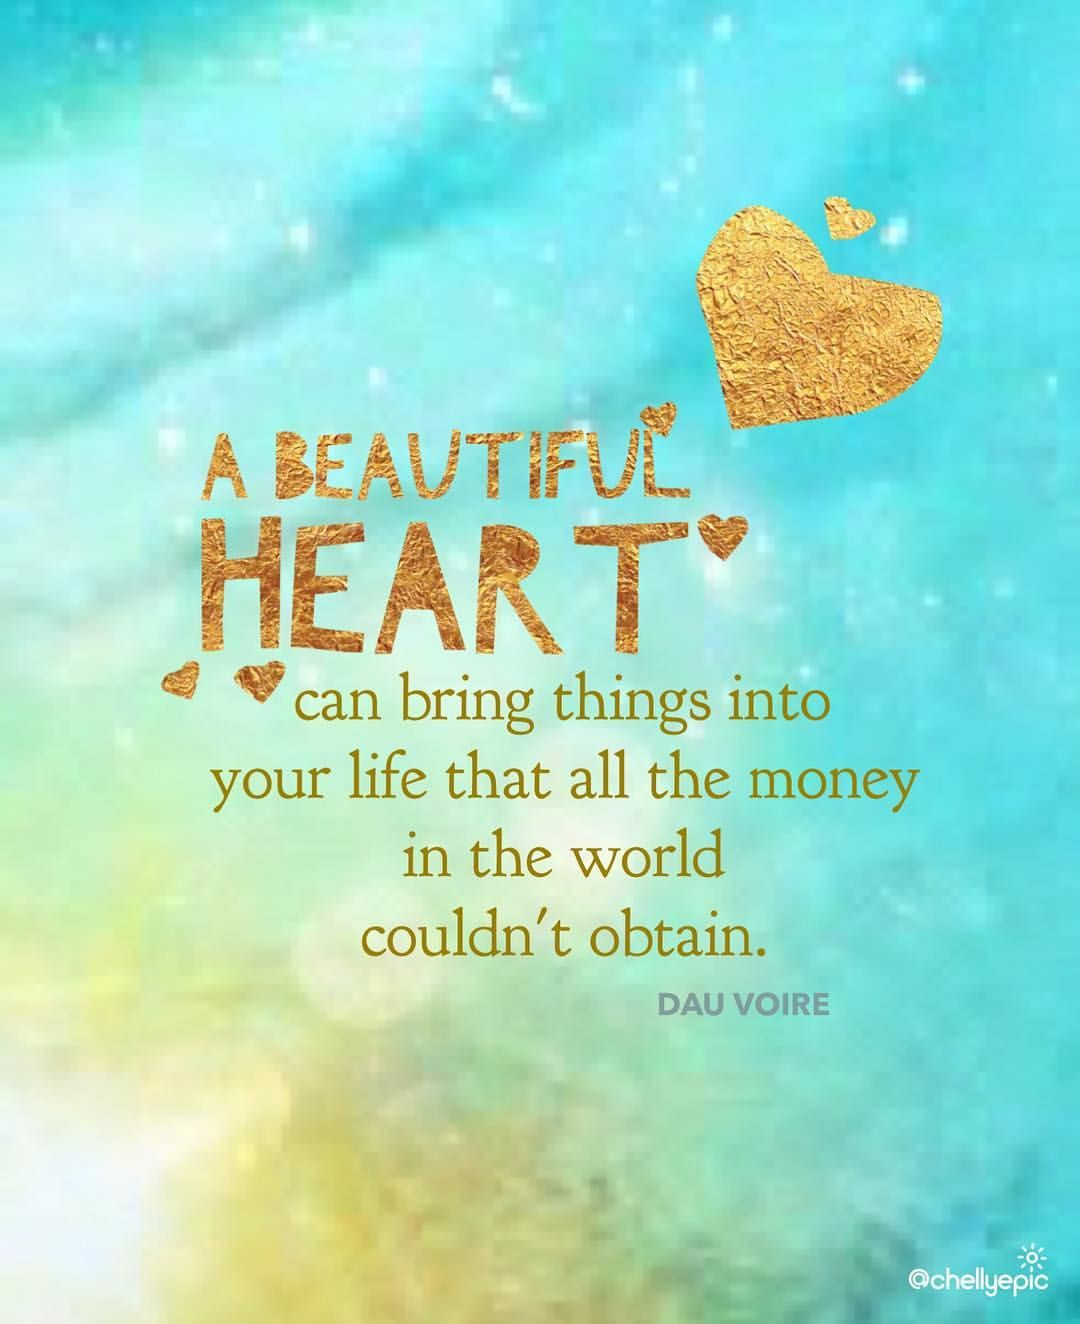 A beautiful heart can bring things into your life that all the